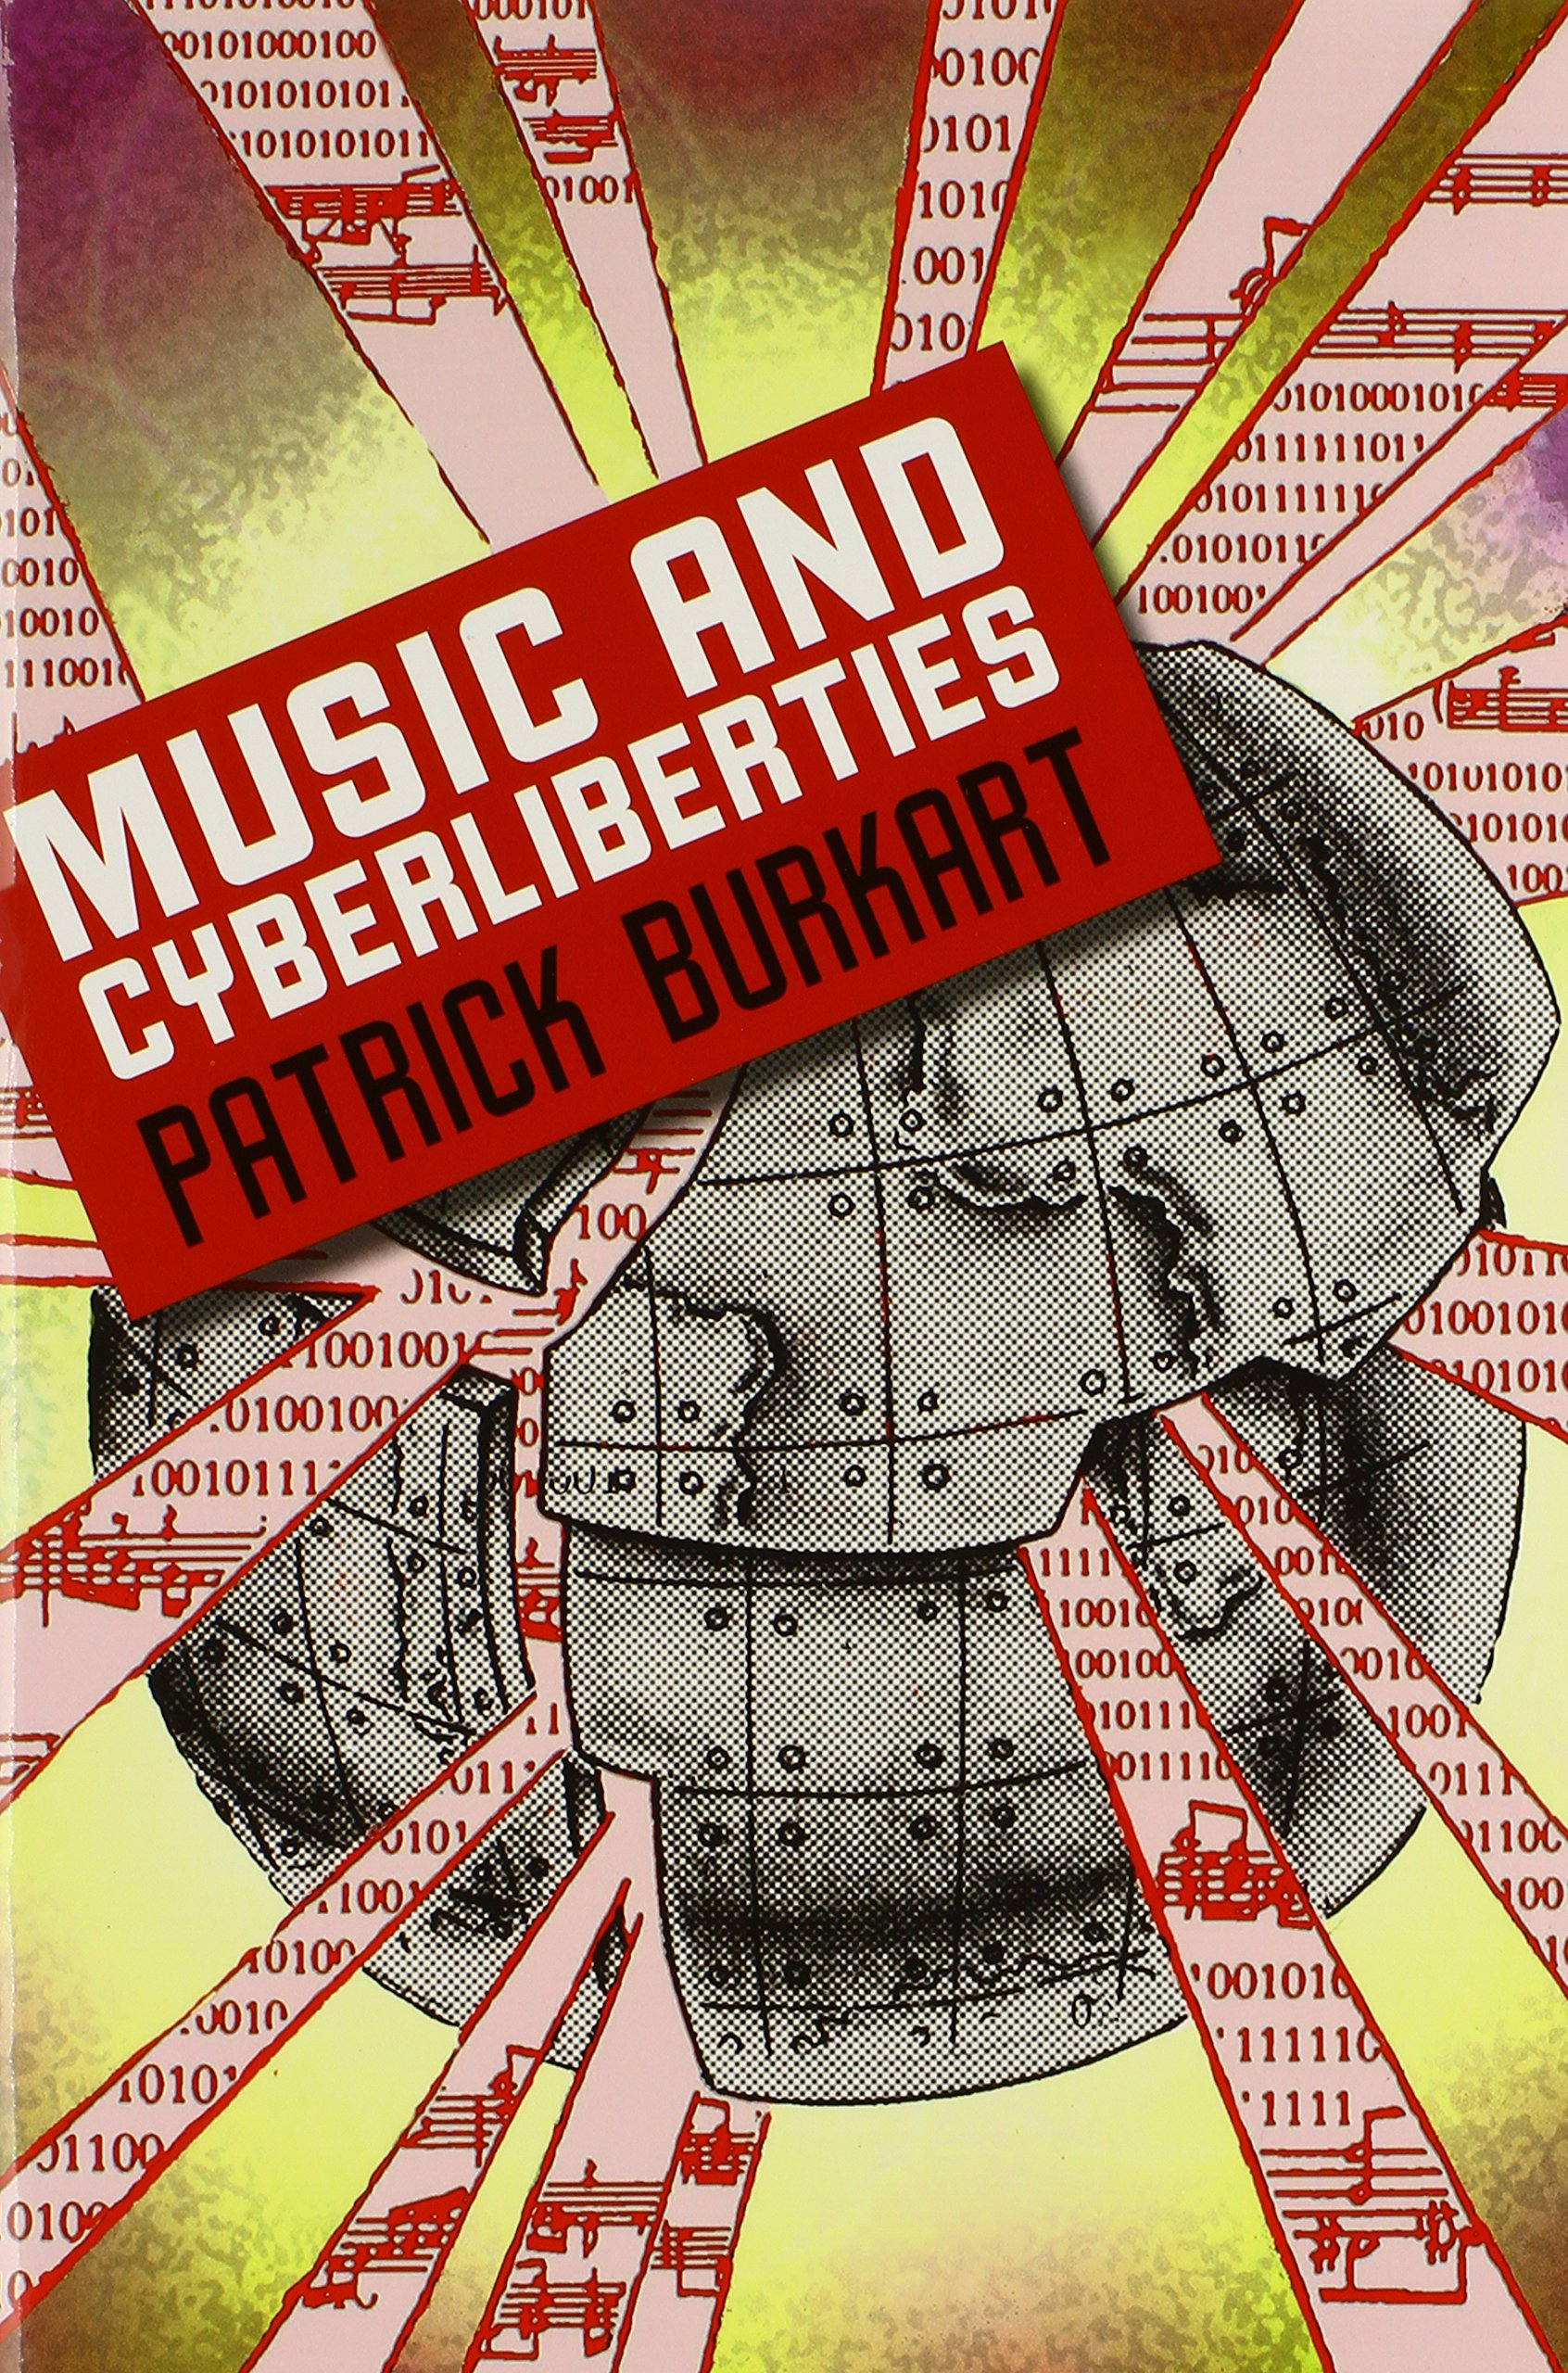 Music and Cyberliberties (Music / Culture)